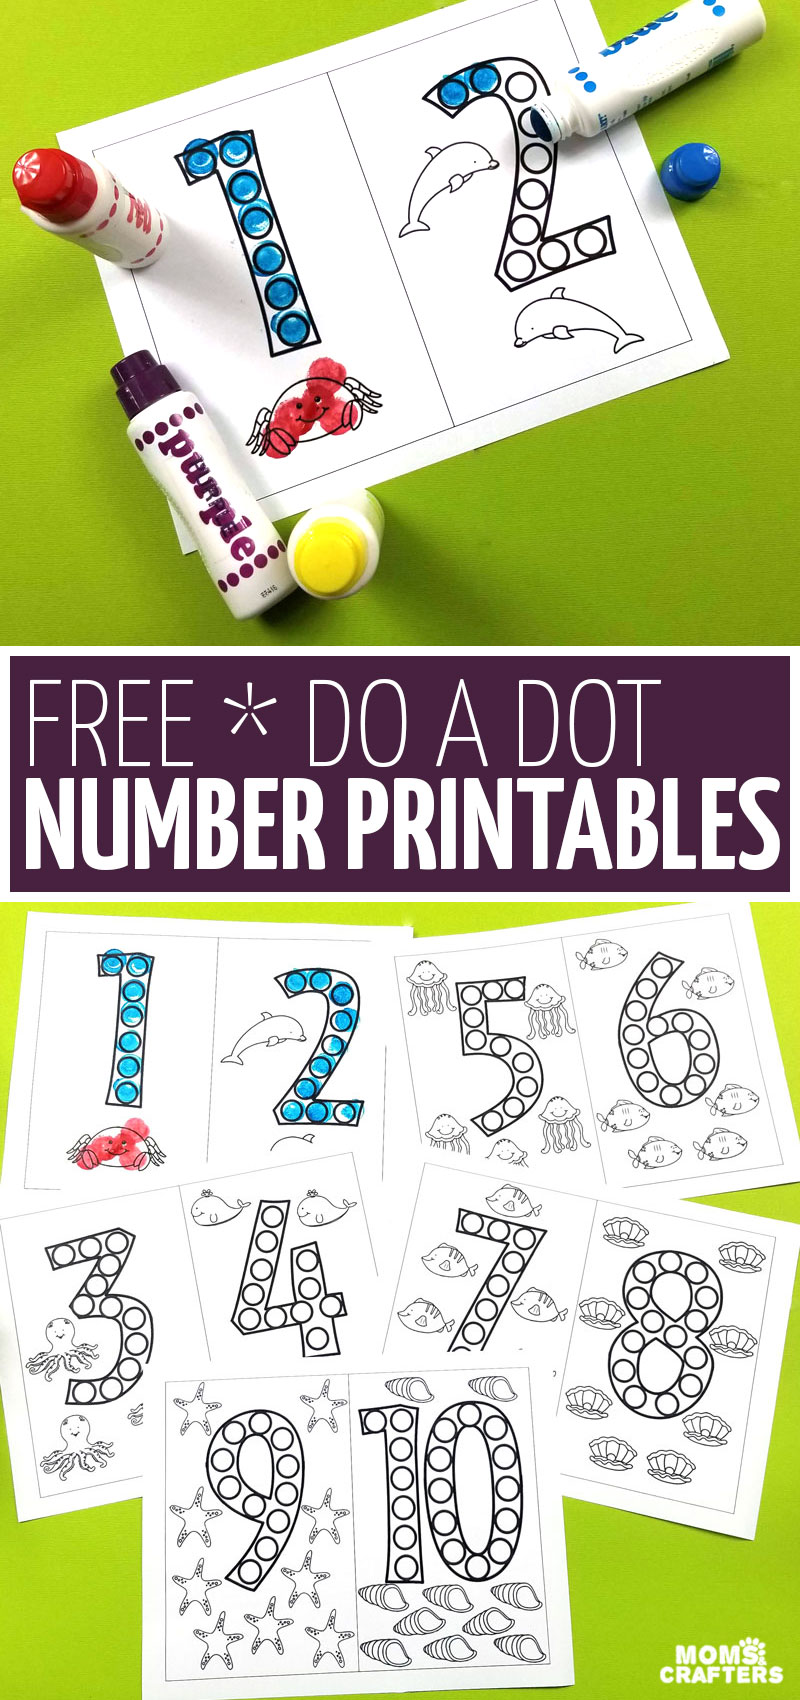 These free do a dot number printables are a great way for kids to have fun learning number forms without worksheets! They're great for at home, for pre-k or kindergarten prep, and a great dot art coloring pages for preschoolers.